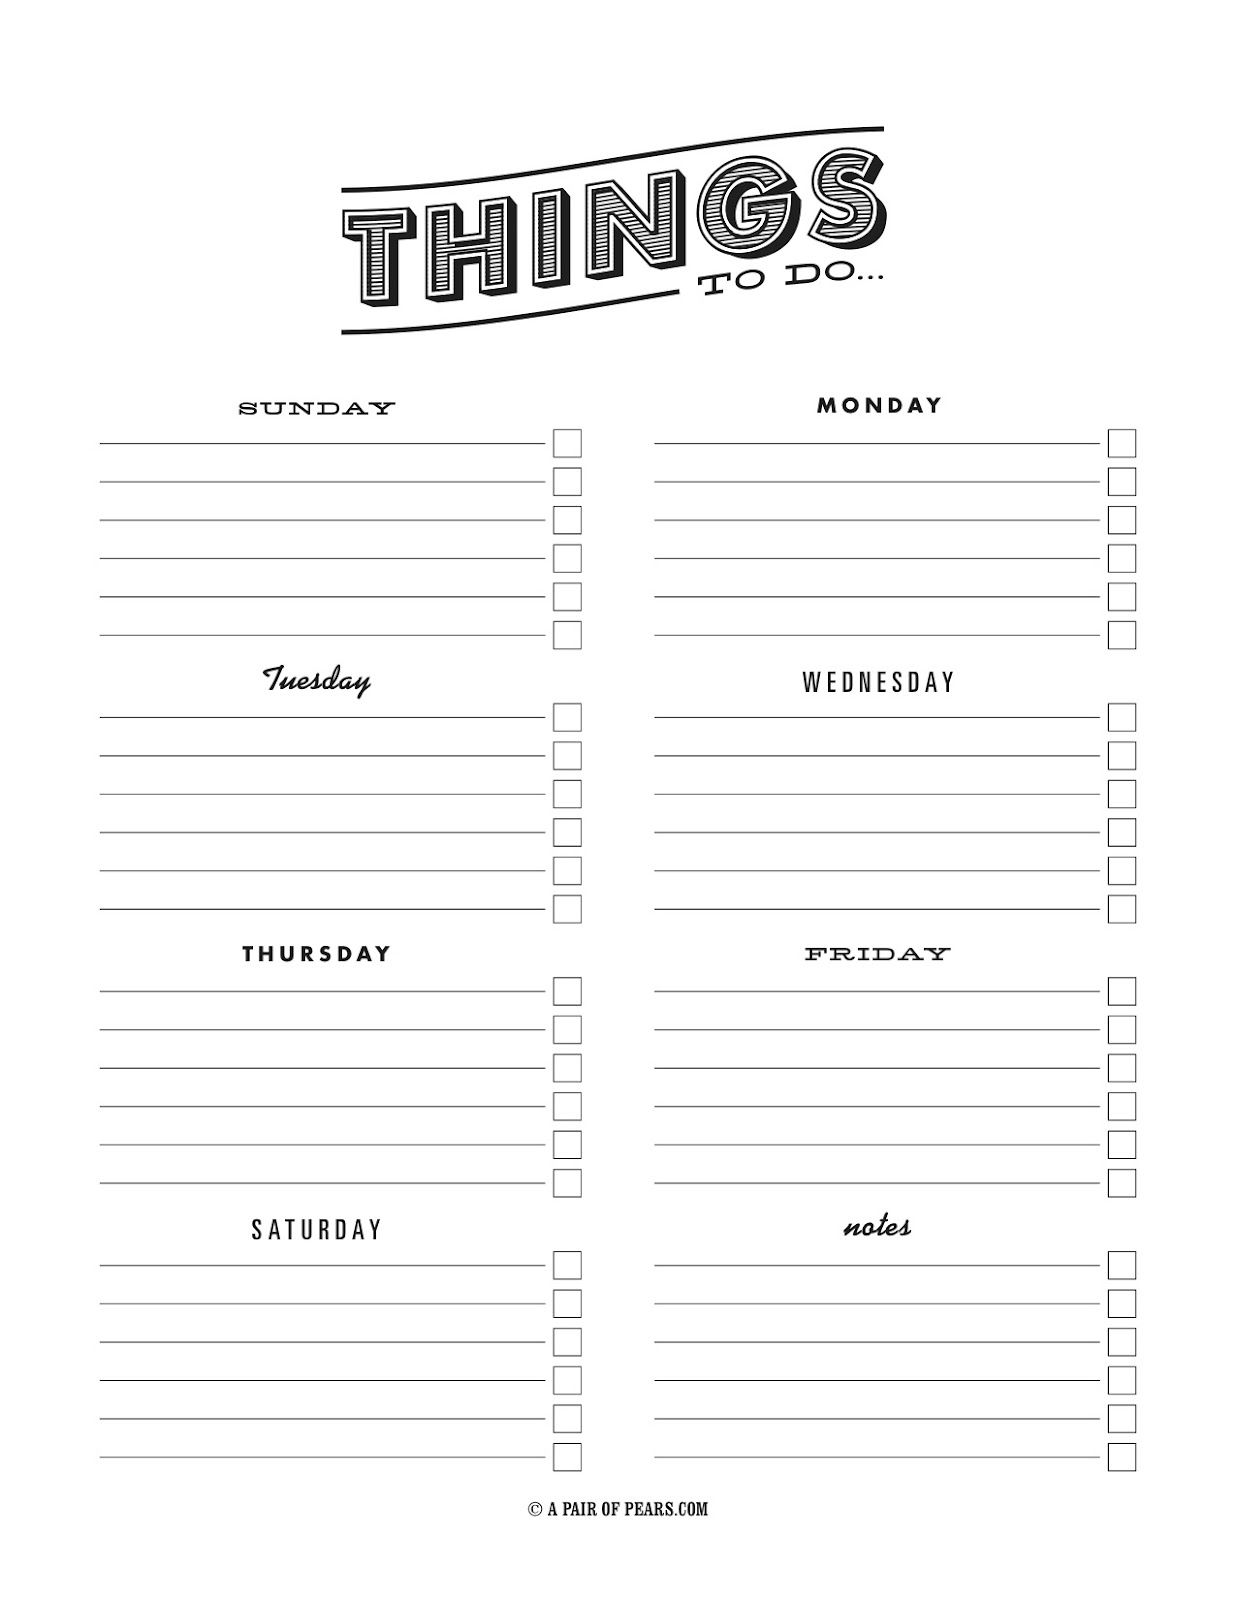 Pin by Kayla M on misc things i love Checklist template